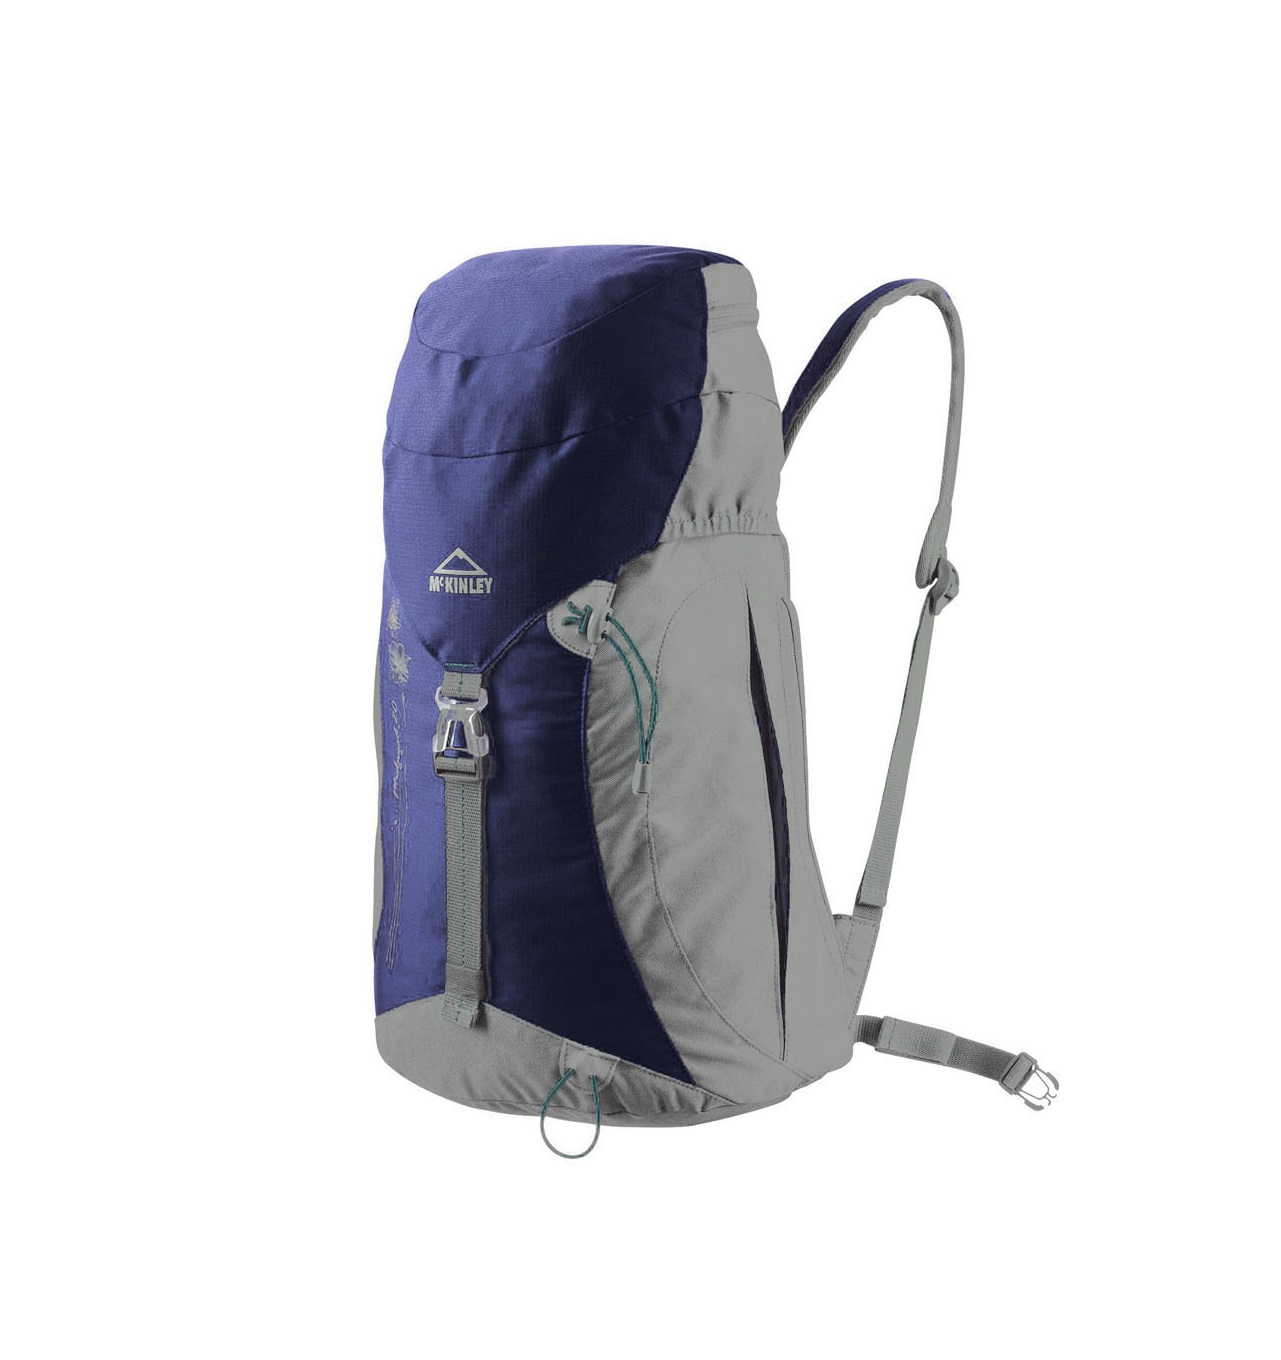 McKinley Midwood Air 20W 240491 Wanderrucksack navy dark *UVP 49,95